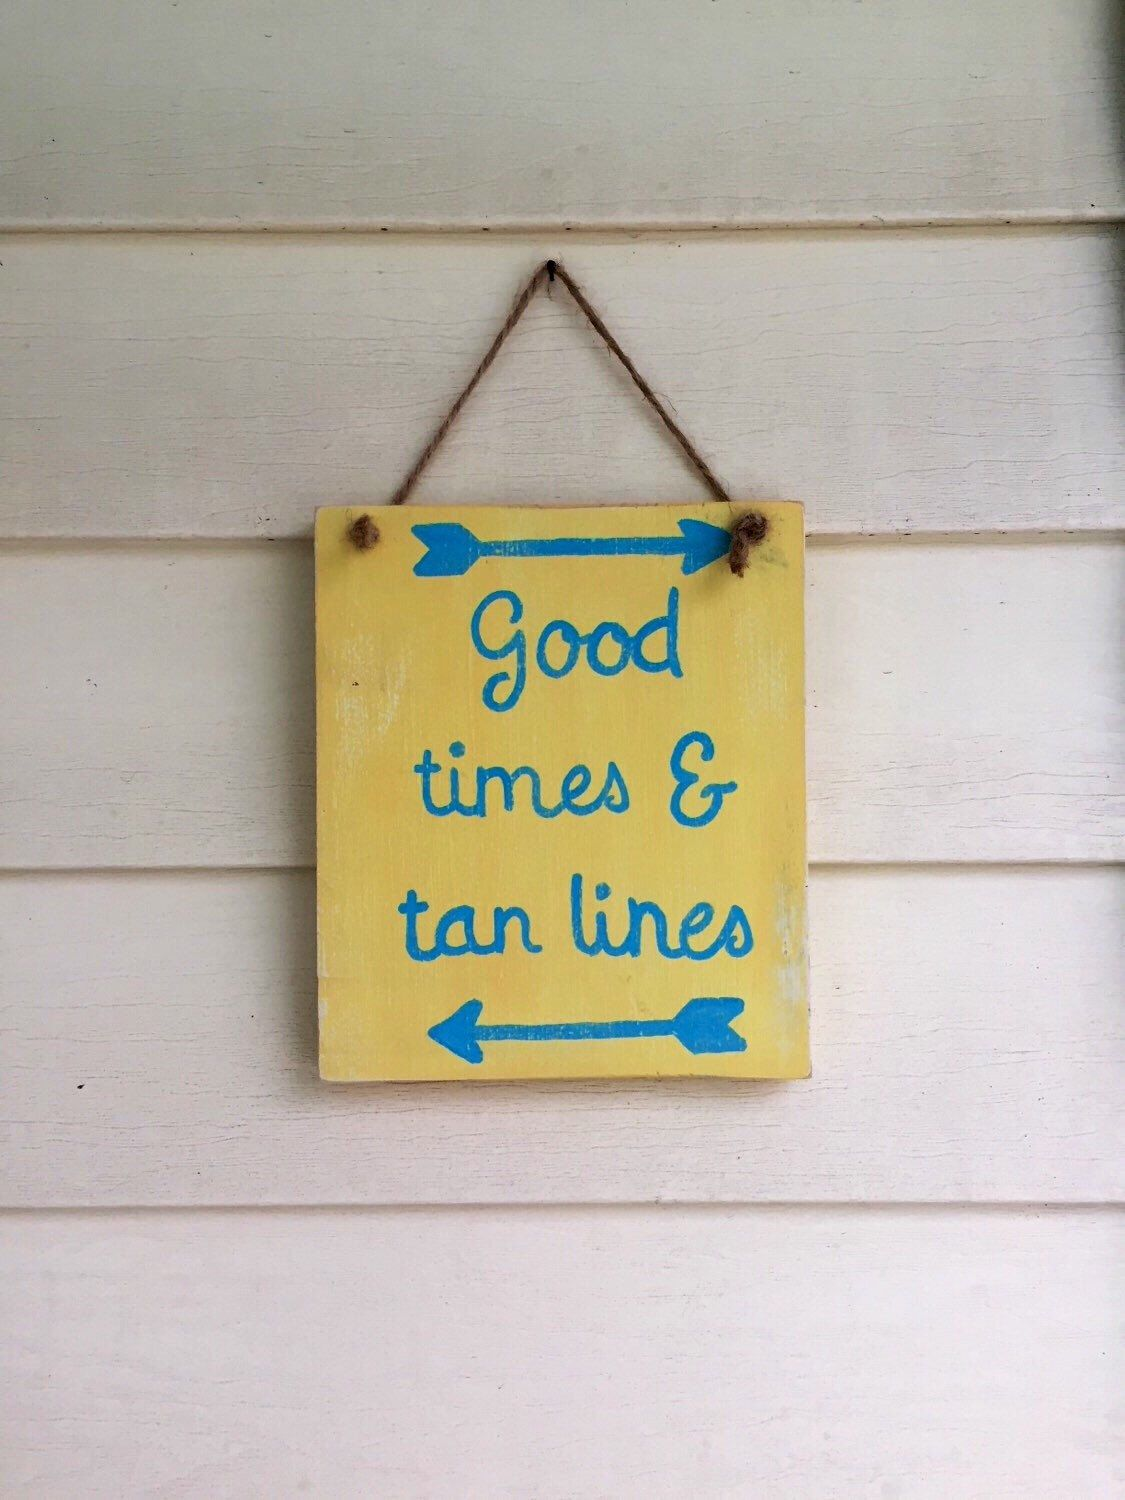 Beach Sign Decor Beauteous Good Times And Tan Lines Beach Sign Beach Decor Arrows Design Inspiration